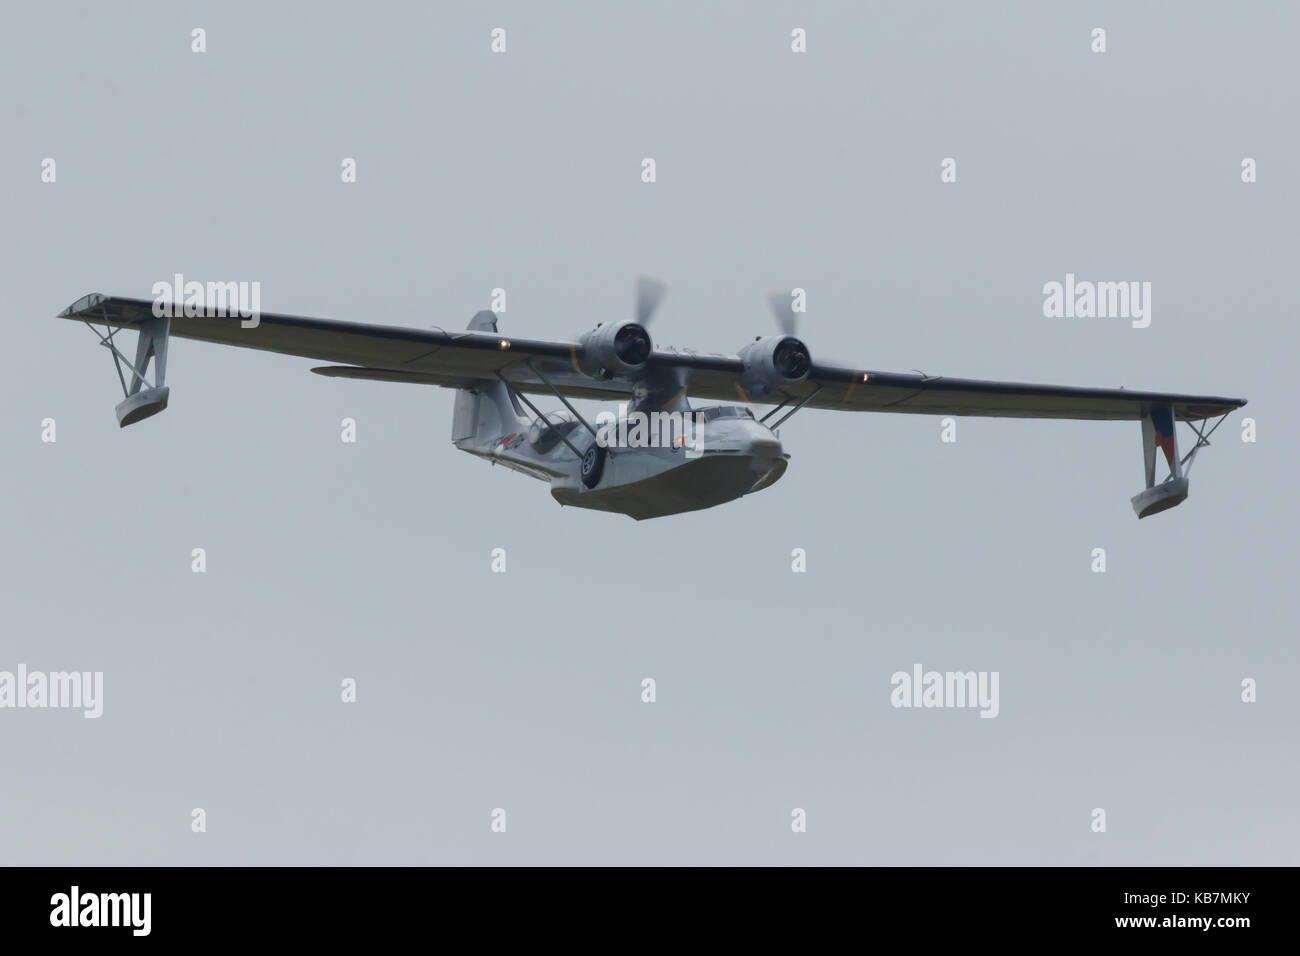 Consolidated PBY-5 Catalina - Stock Image